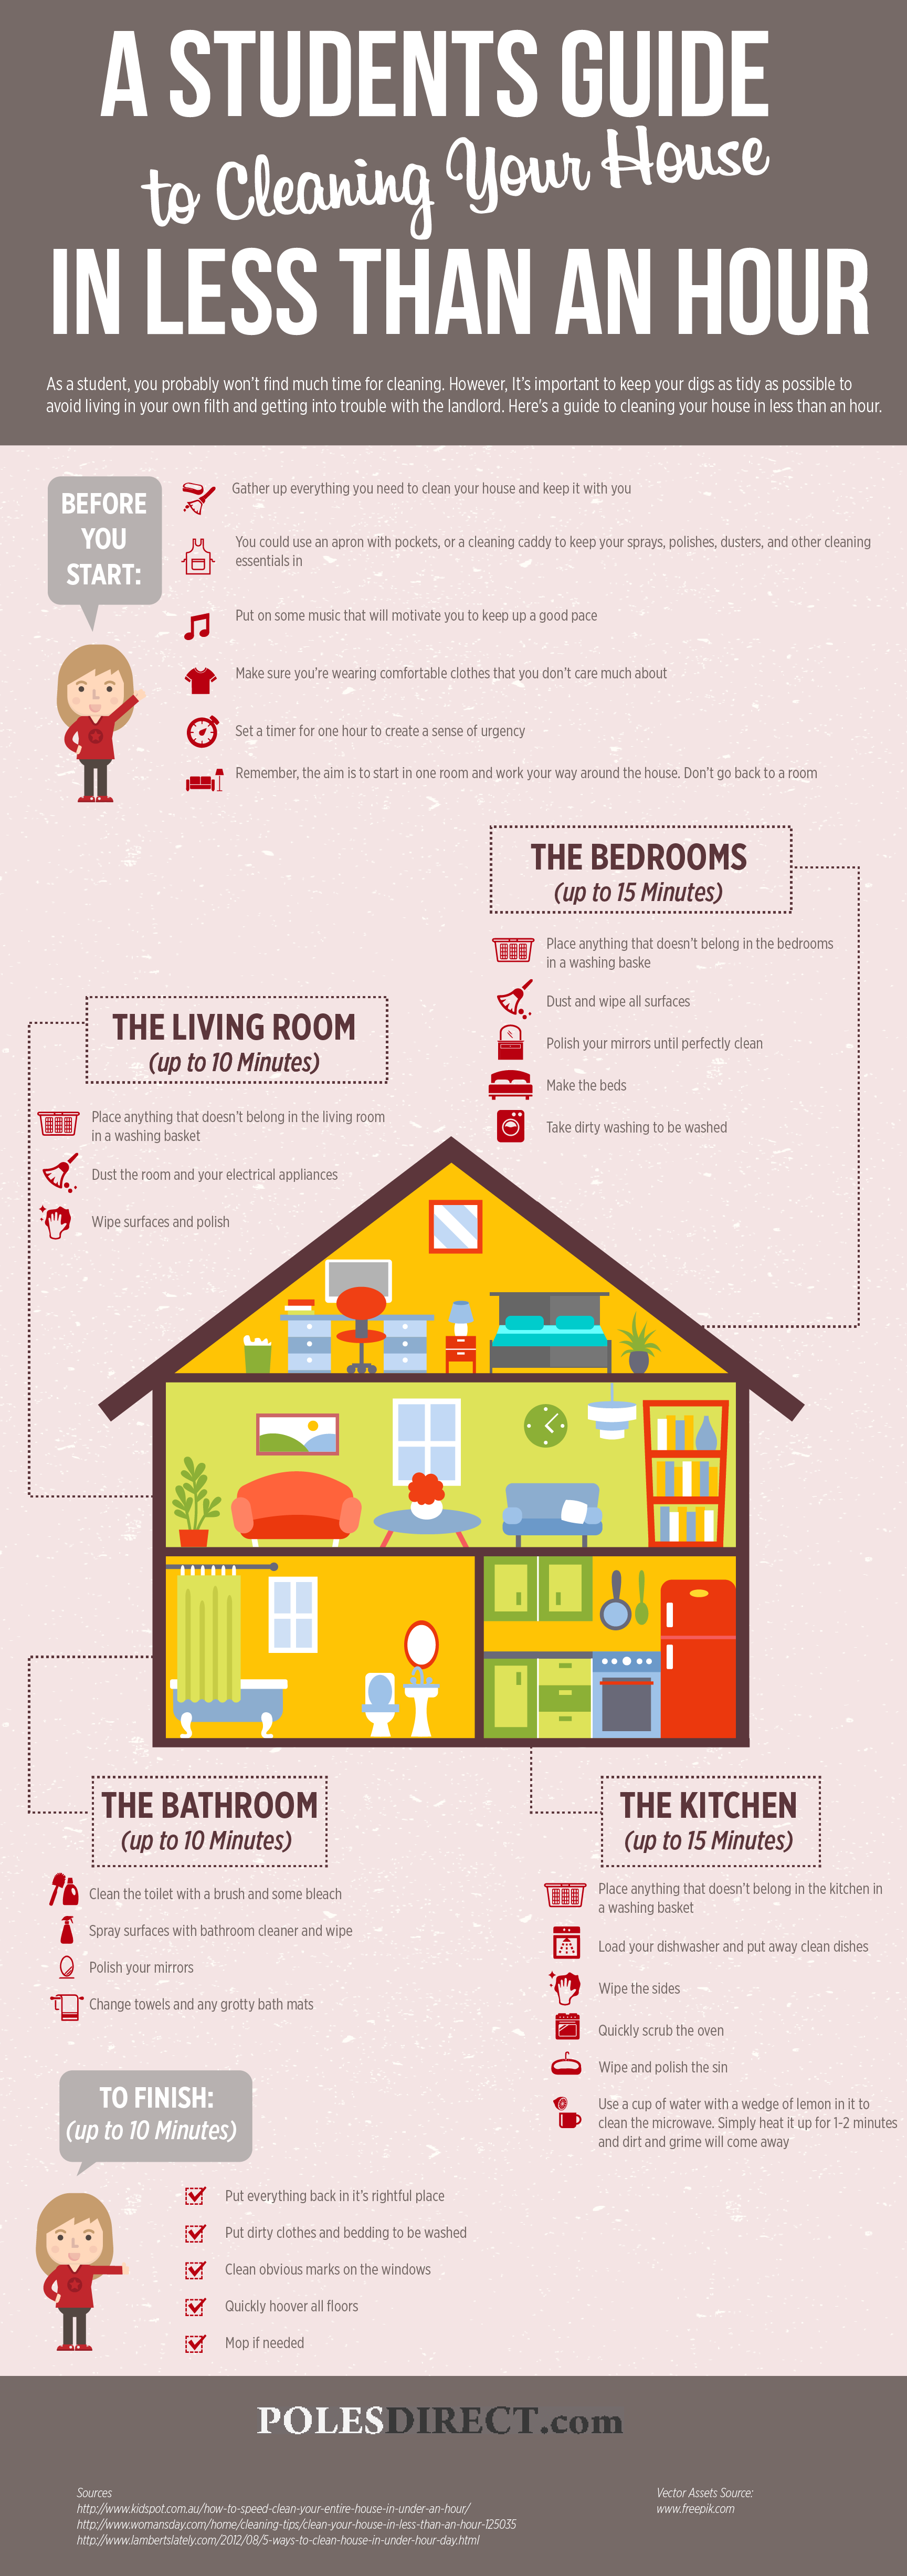 a student guide to cleaning your house in less than an